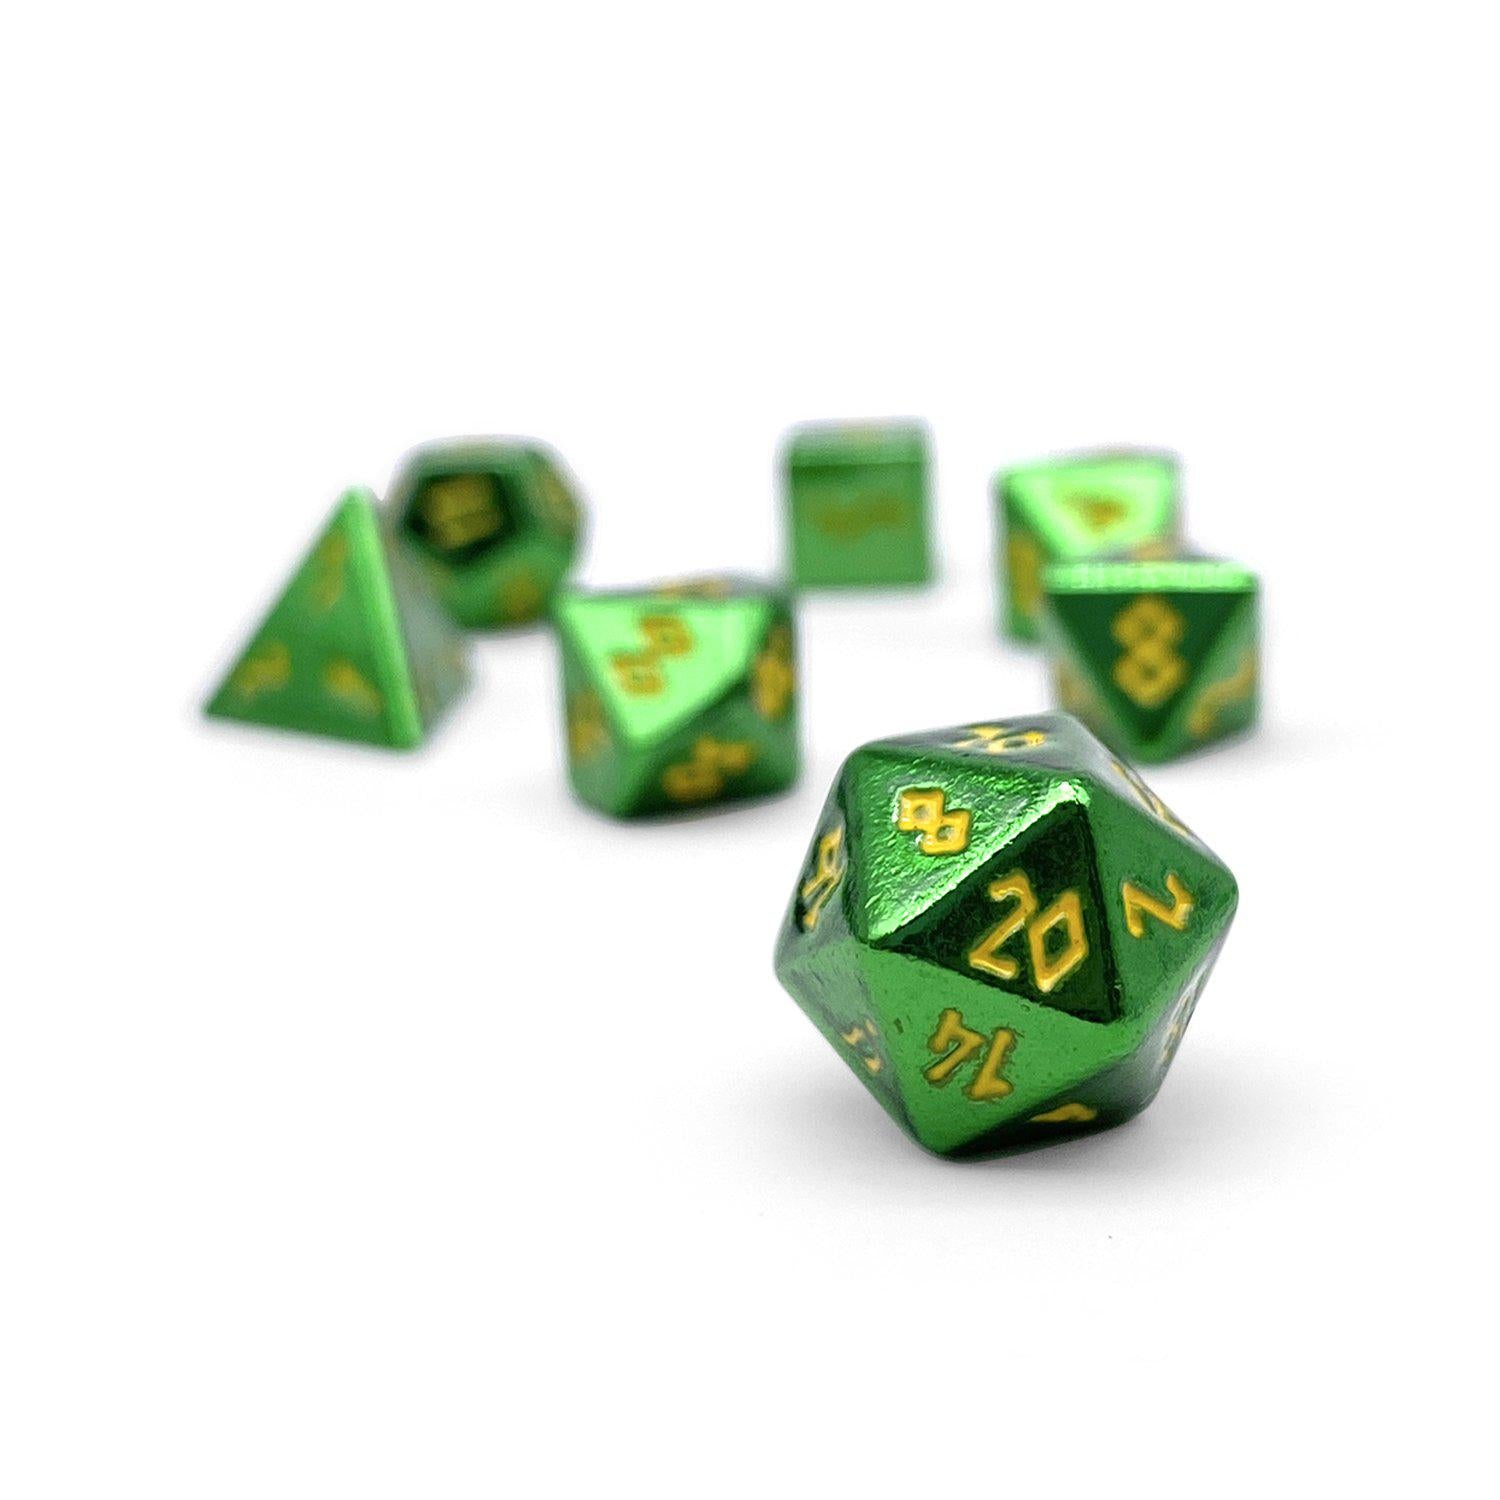 Goblin Horde Pebble ™ Dice - 10mm Alloy Mini Polyhedral Dice Set